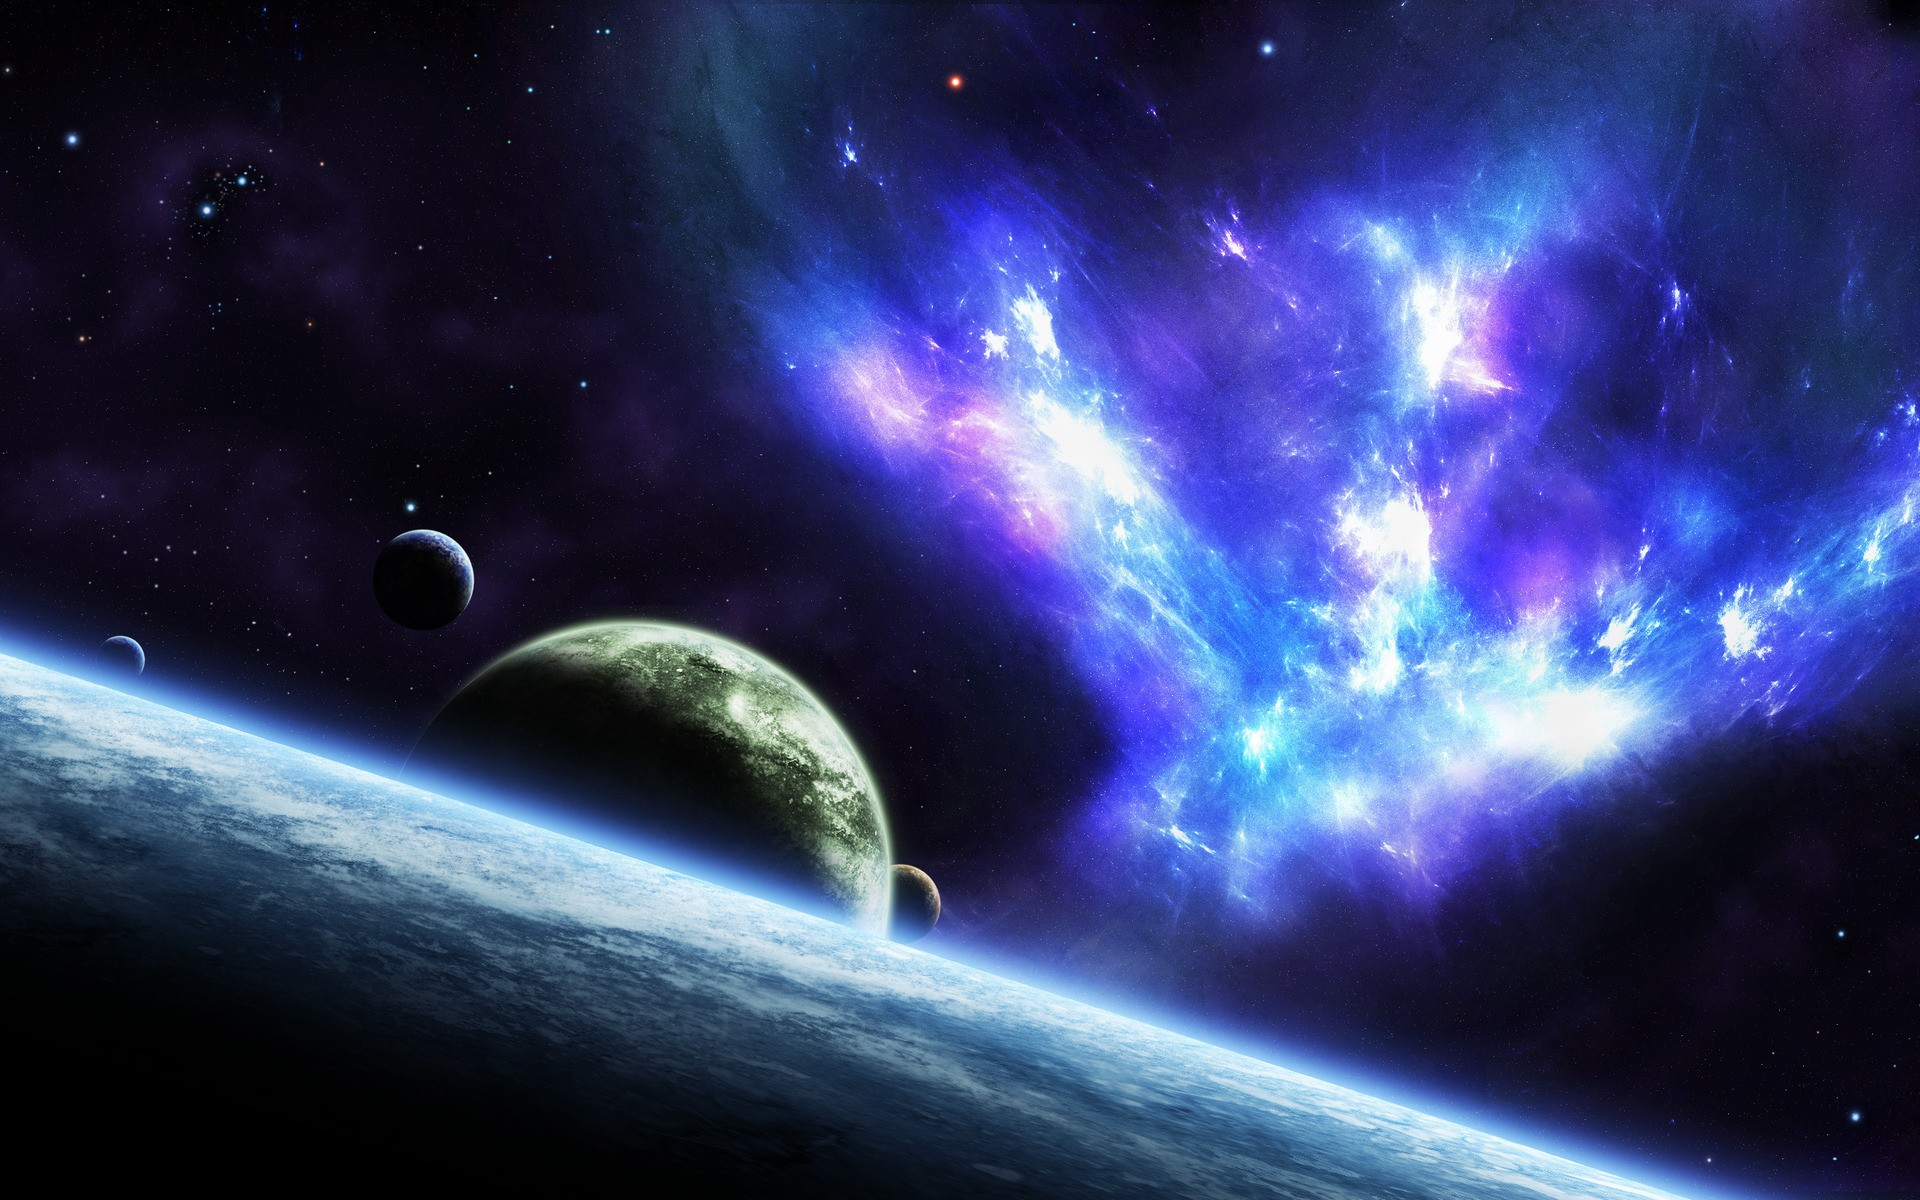 Outer space stars planets nebulae wallpaper | 1920x1200 ...